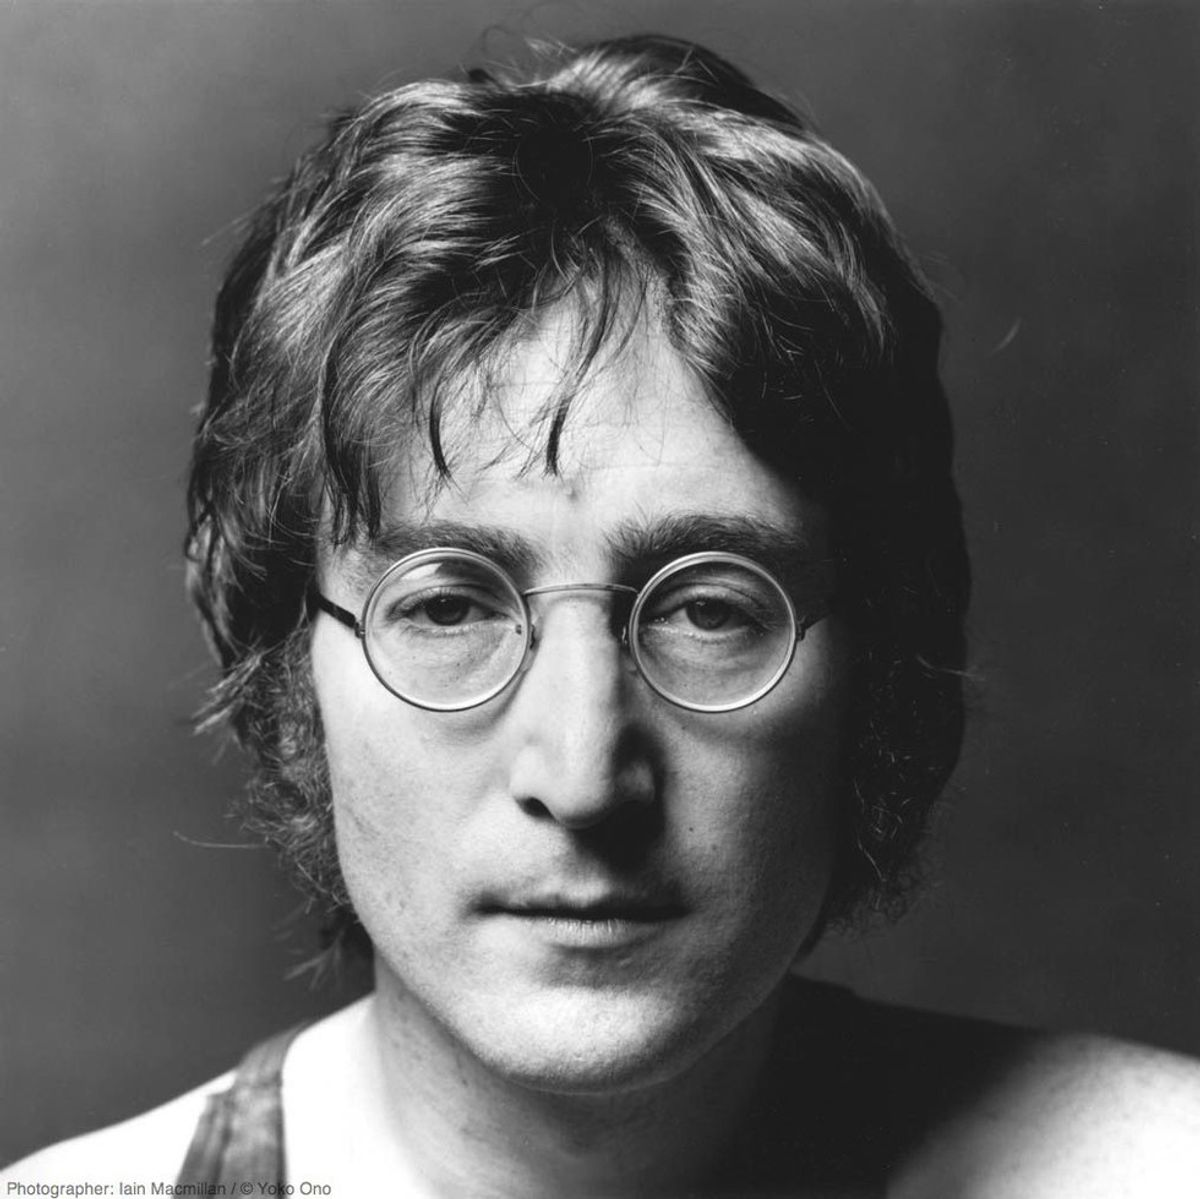 John Lennon: Why He Was One of the Greatest Hypocrites In History